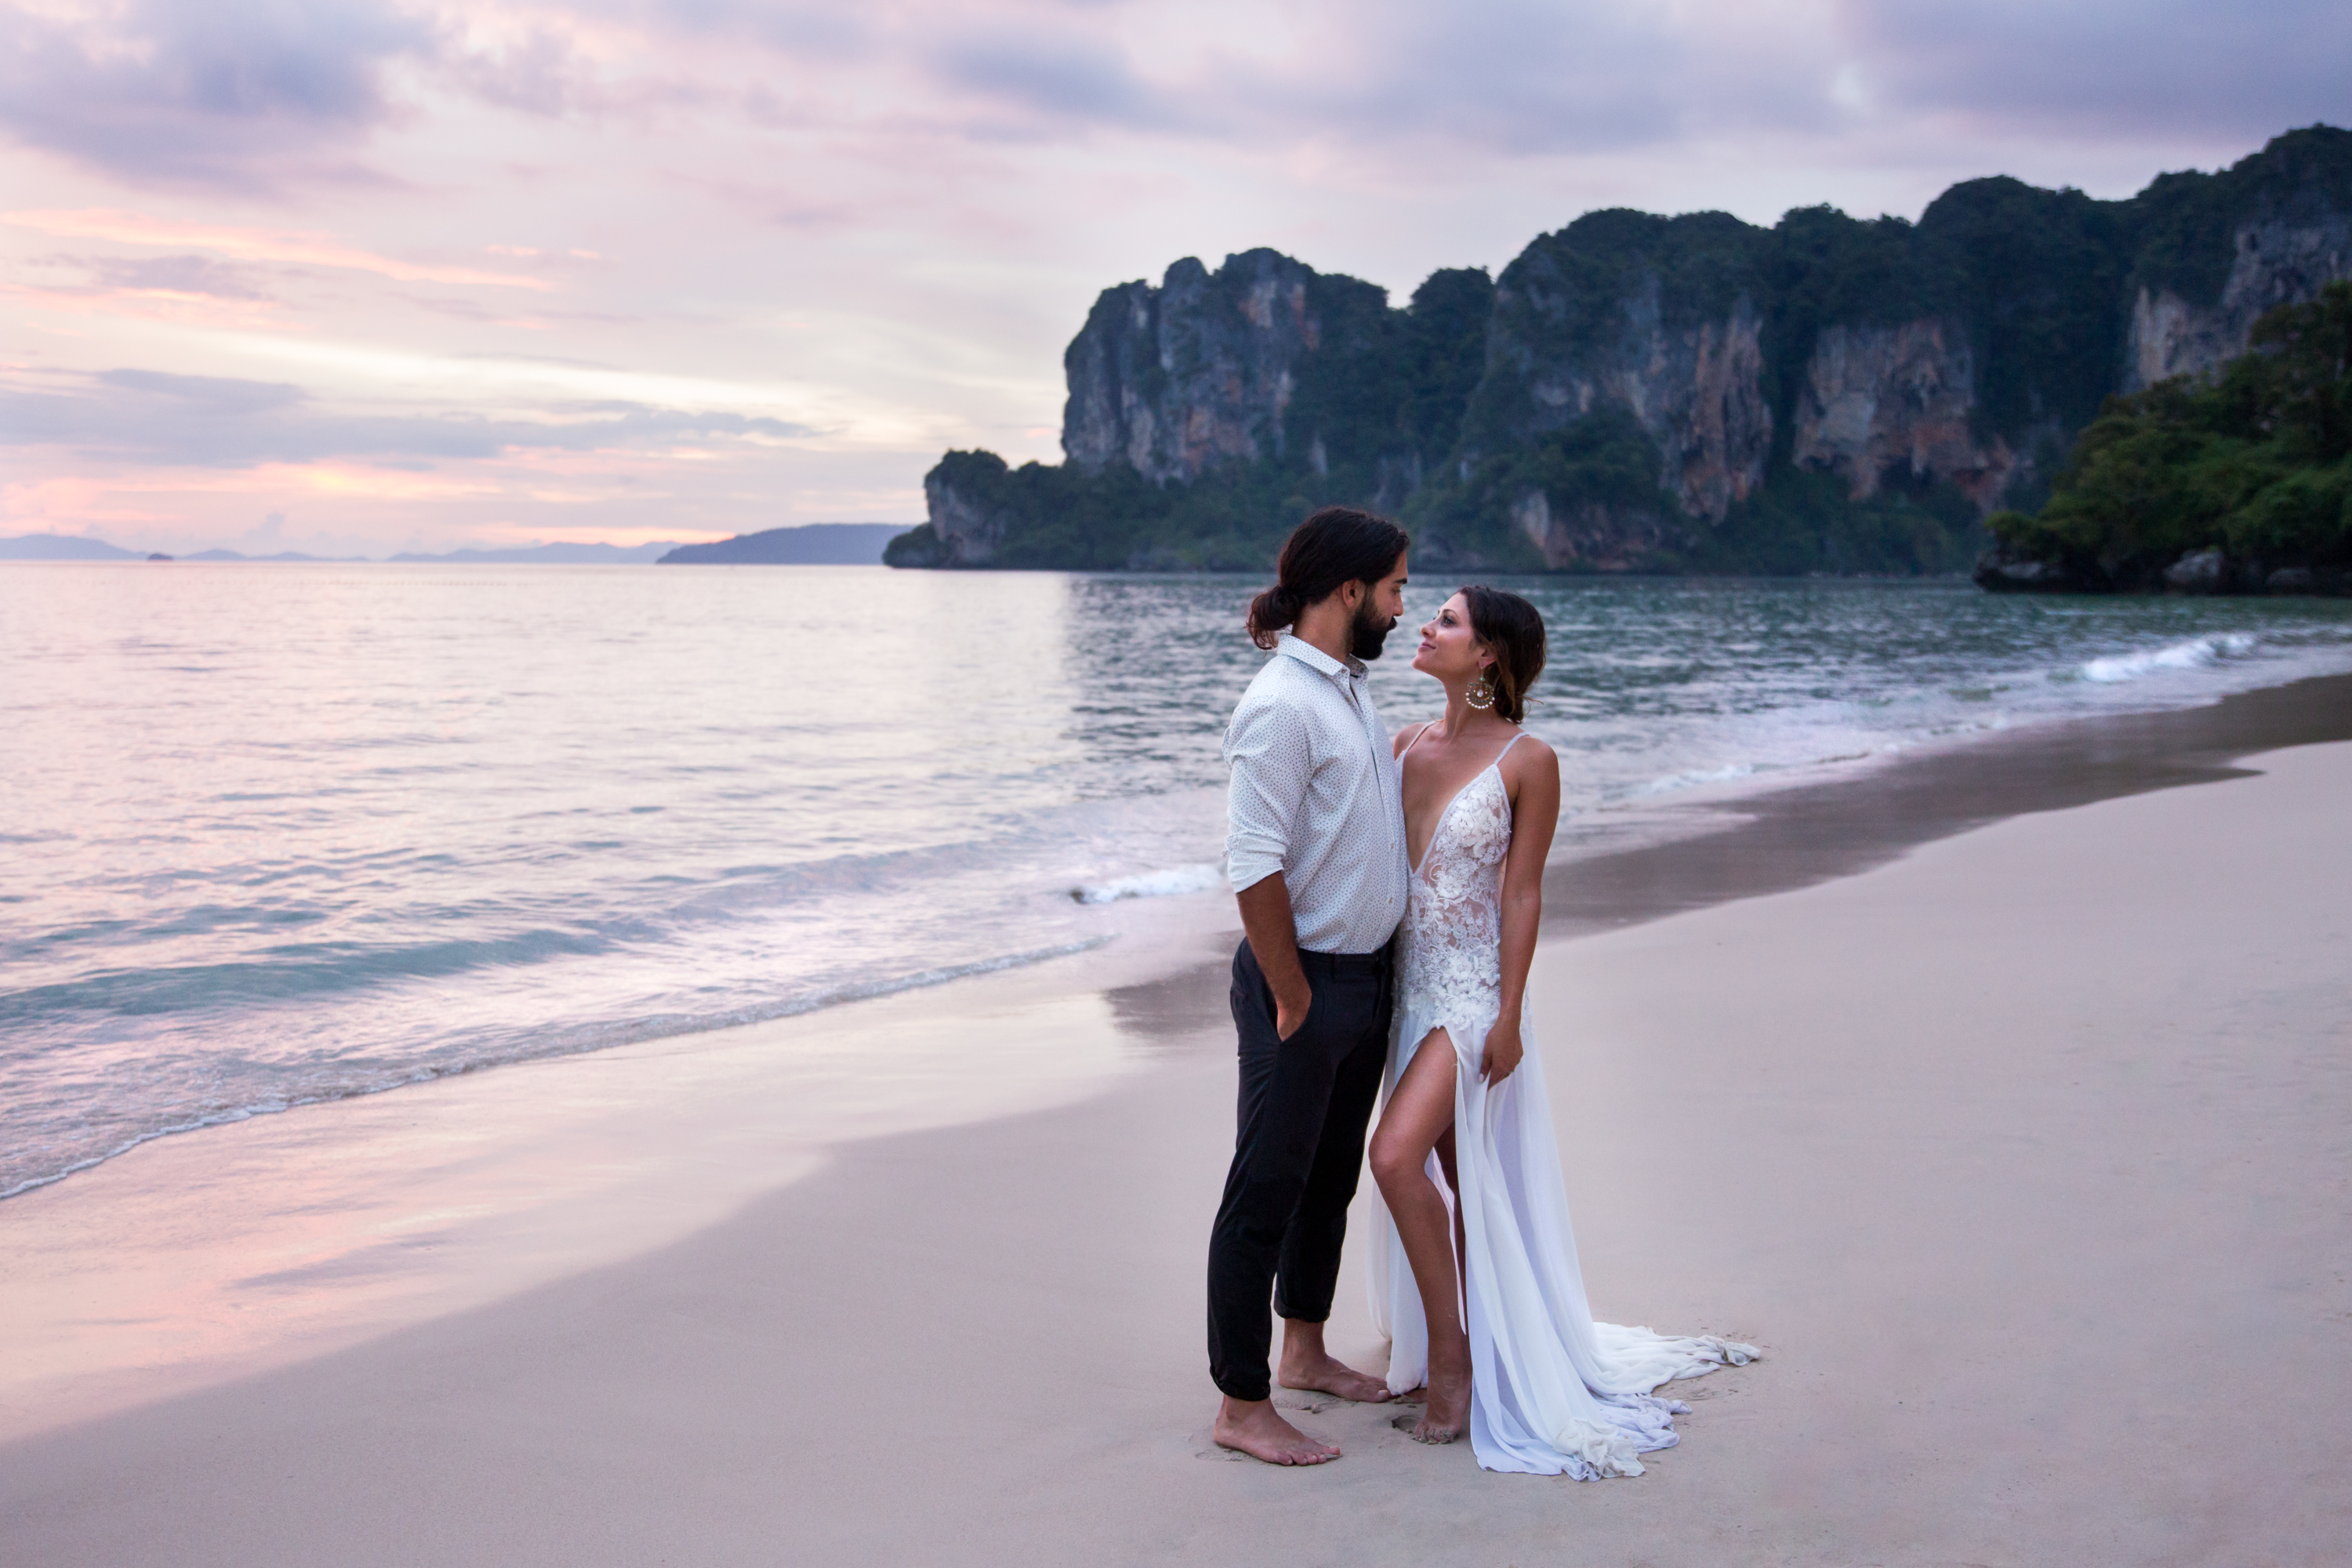 Persian Newlyweds Magic Hour Pruple Sky Railay Beach Thailand Krabi Zsuzsi Pal Photography Wedding Sunset